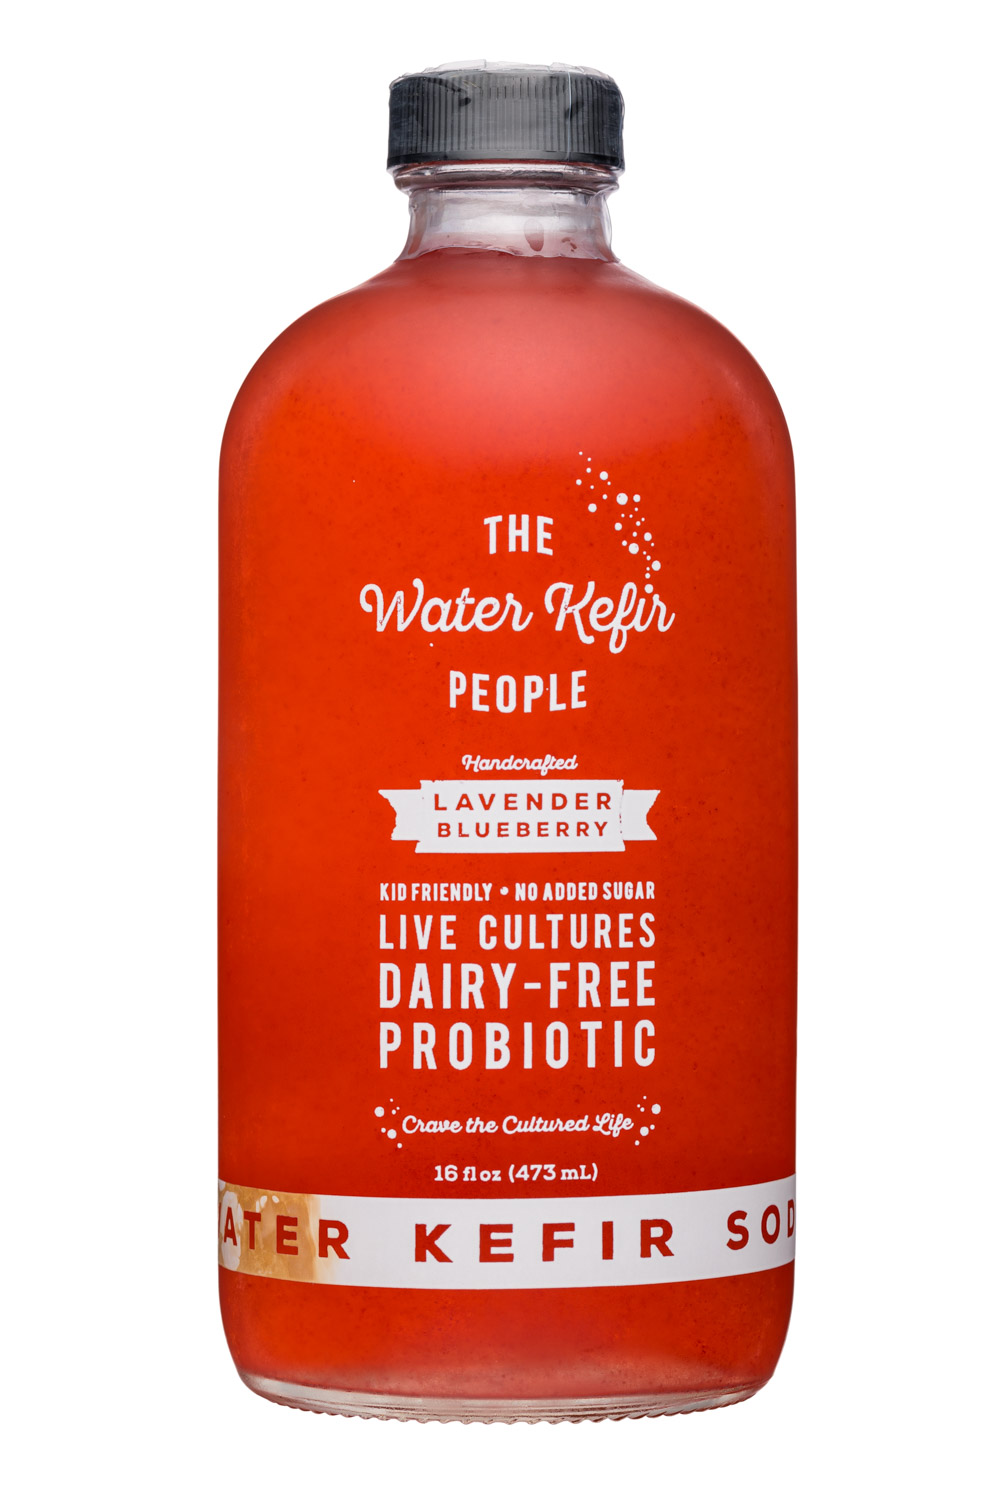 The Water Kefir People: TheWaterKefirPeople-16oz-LavenderBlueberry-Front